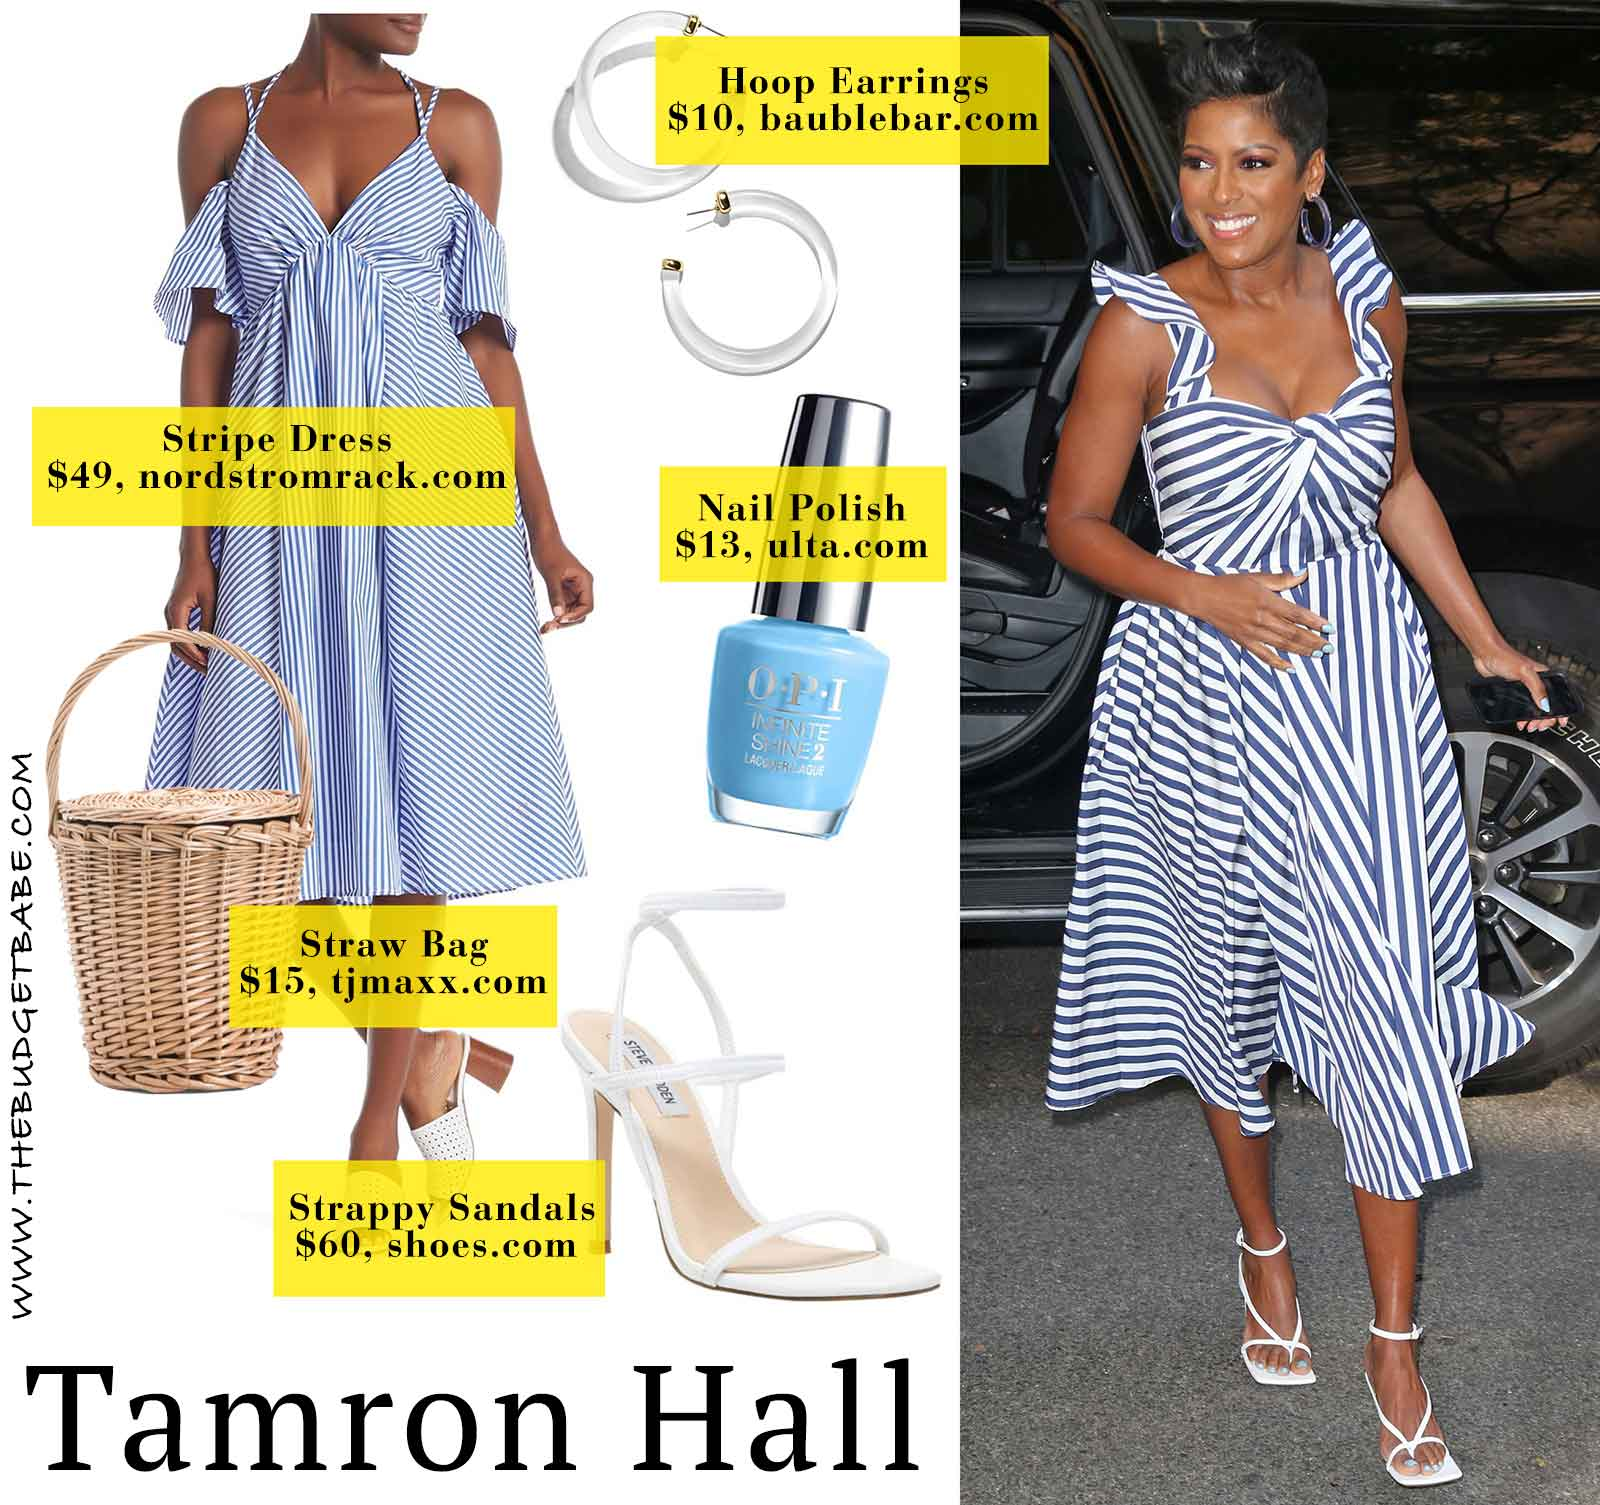 Tamron Hall in Jason Wu - love this look!